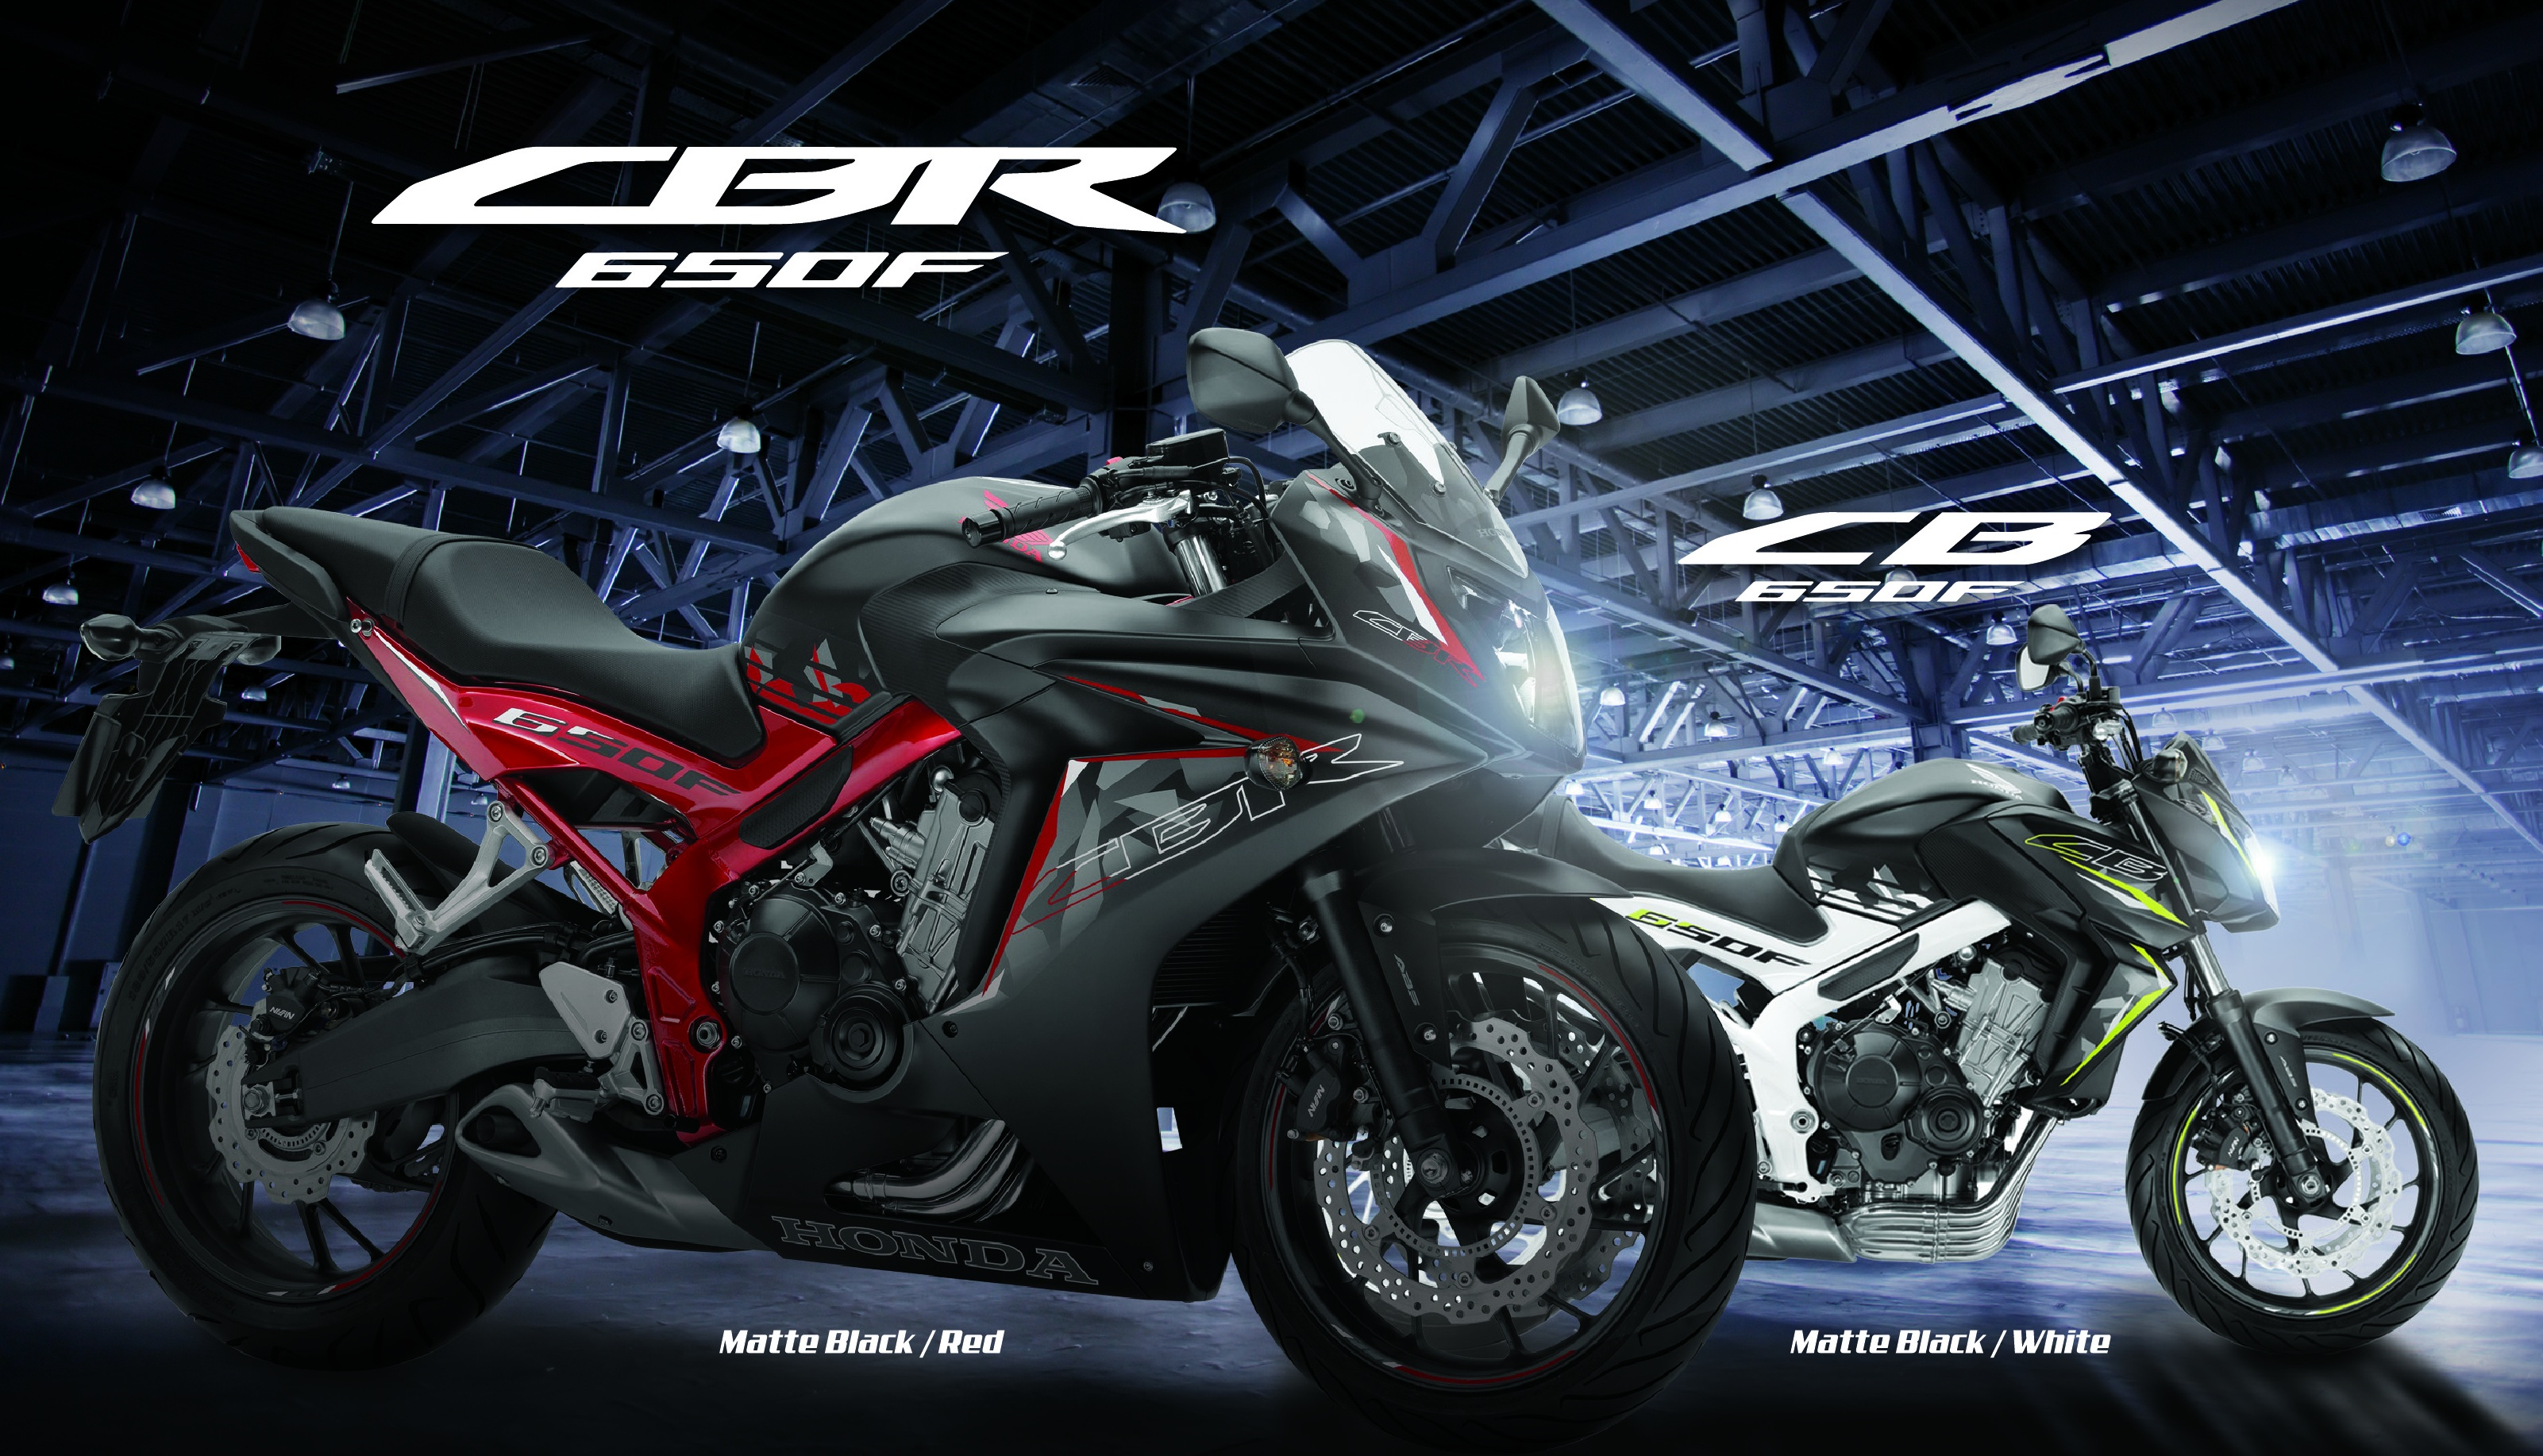 2017 sees honda cb650f naked sports and cbr650f sportsbike